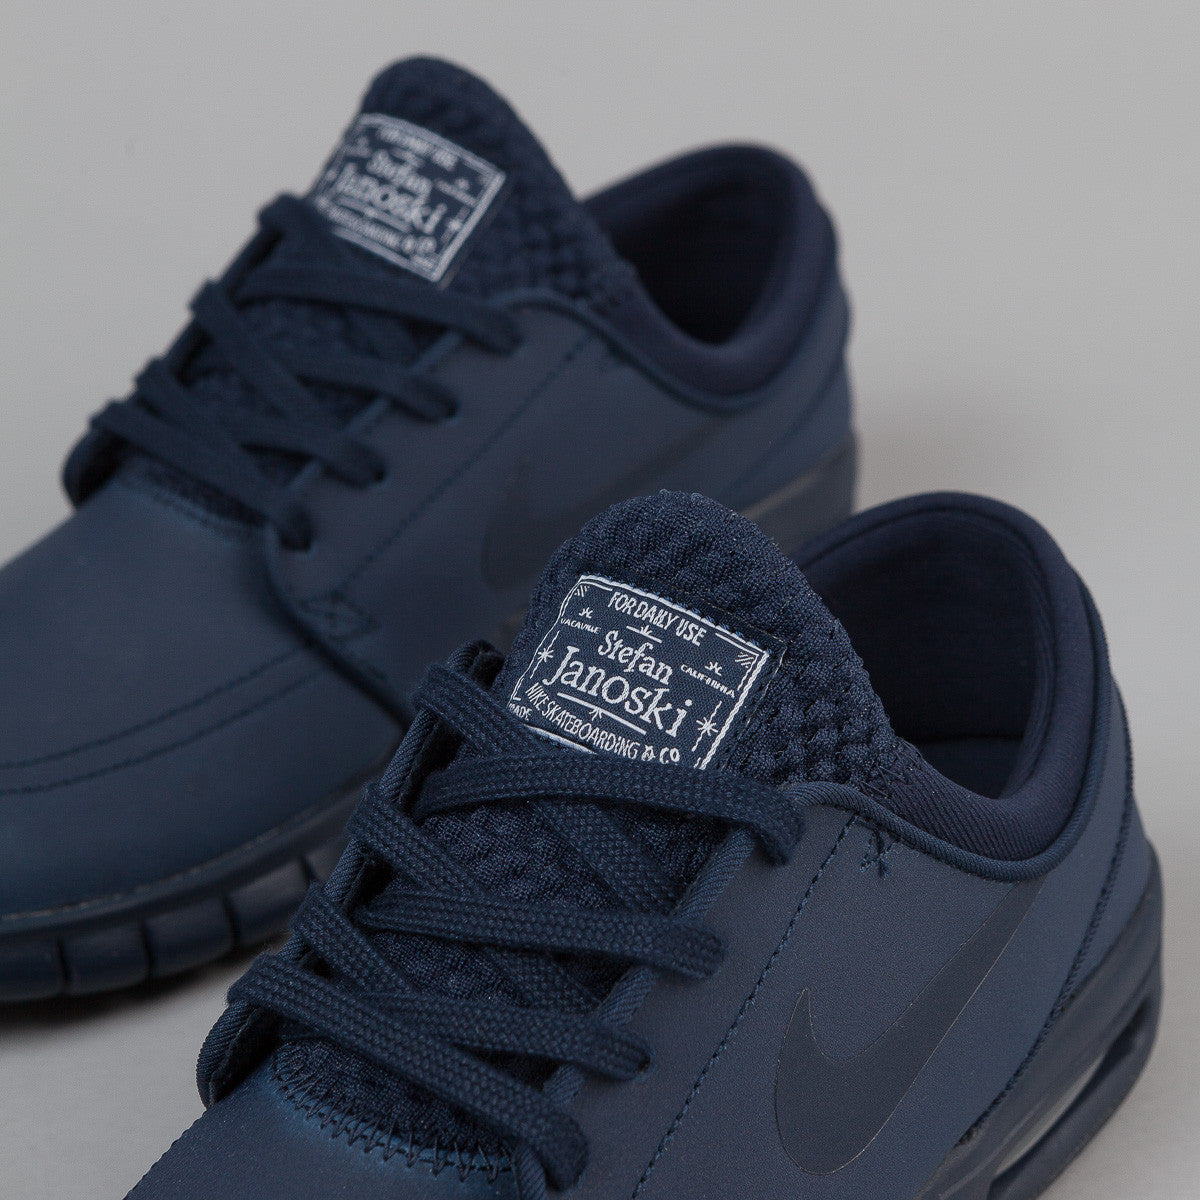 Nike Sb Stefan Janoski Max Leather Shoes Obsidian